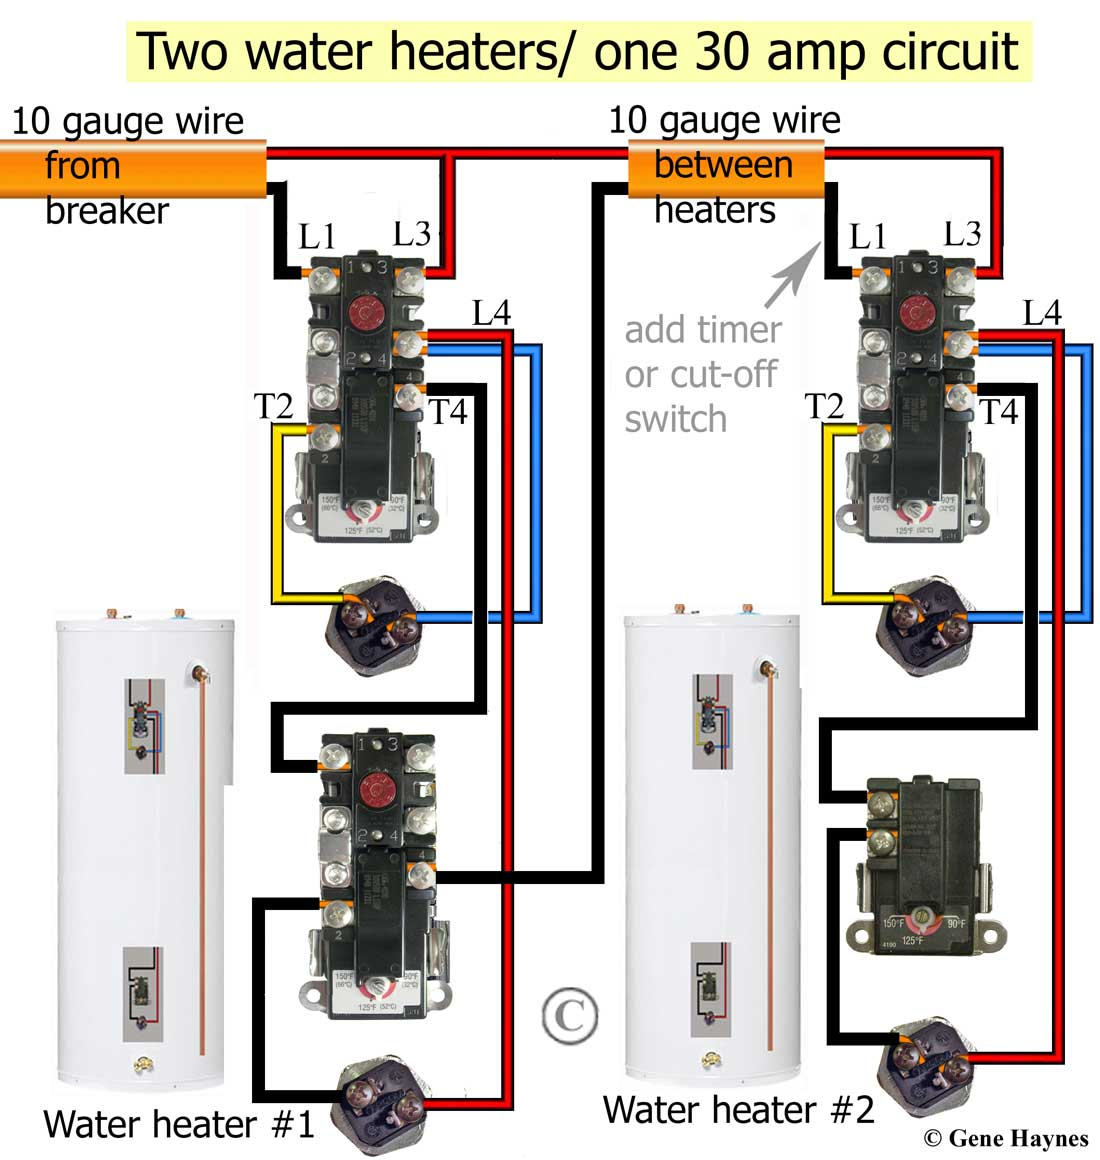 electric water heater wiring schematic wiring diagram water heater electrical diagram electric water heater wiring schematic #5